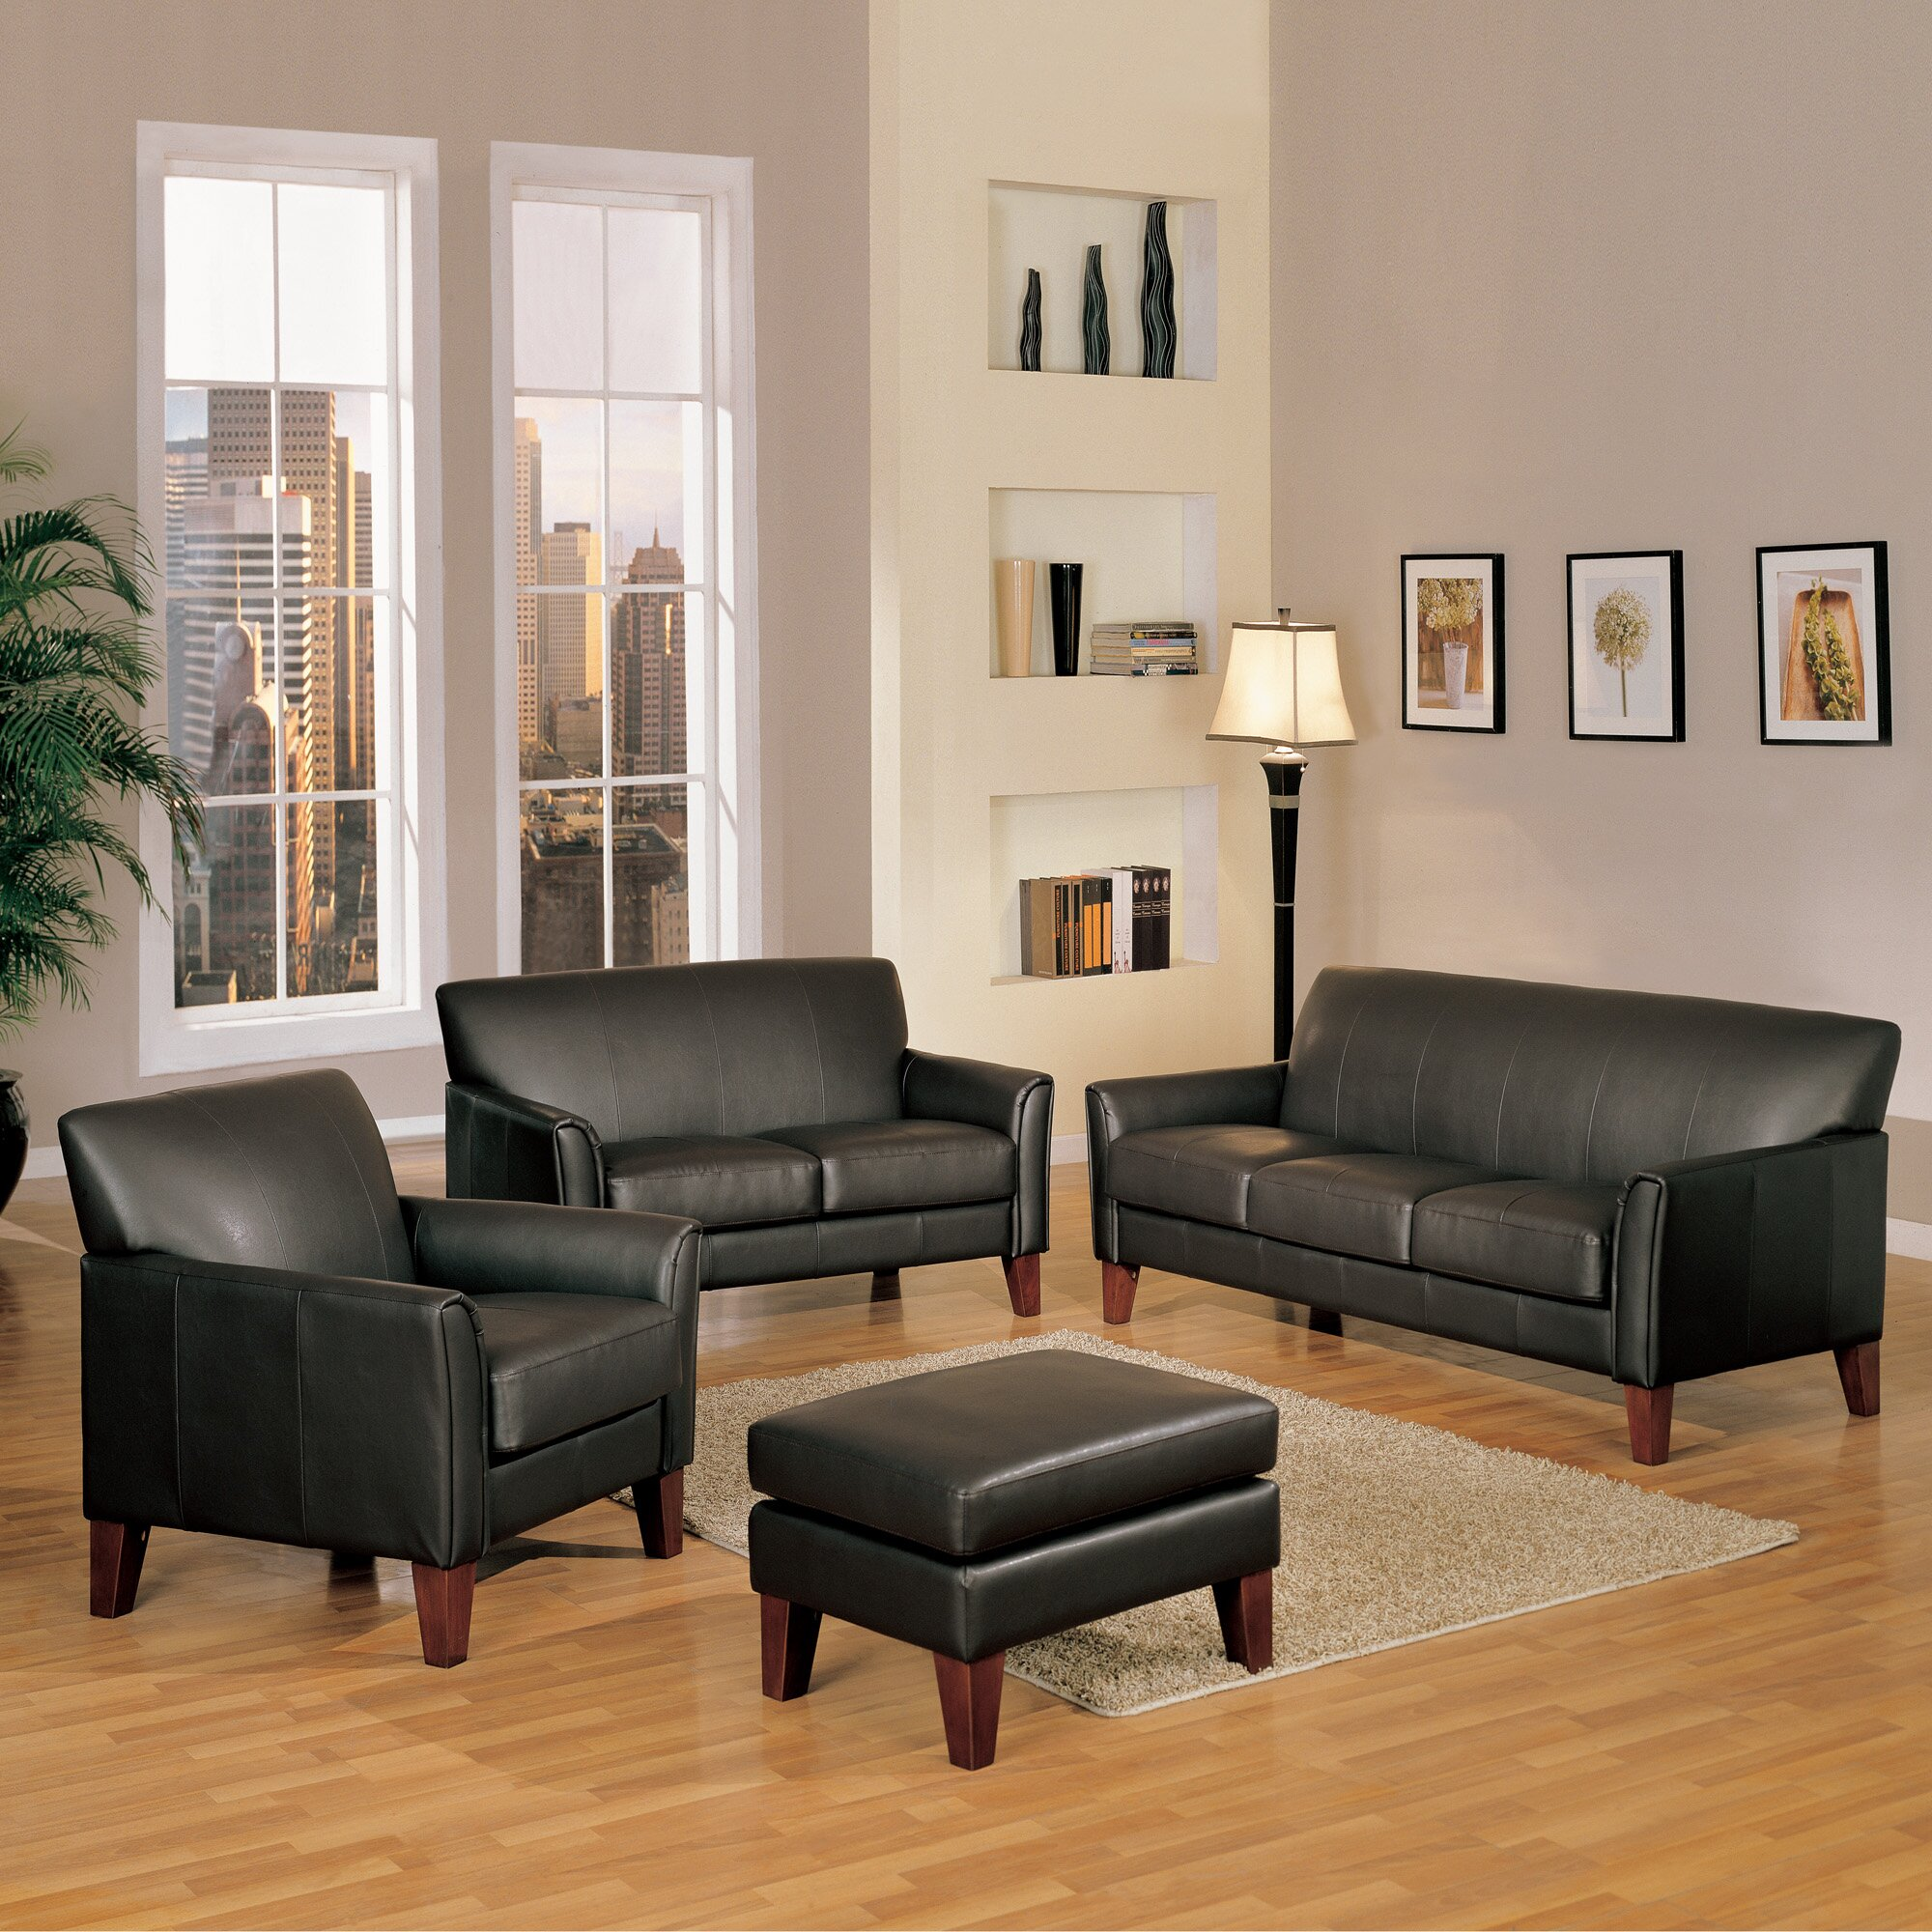 Three posts clintonville 4 piece living room set reviews for 4 piece living room set